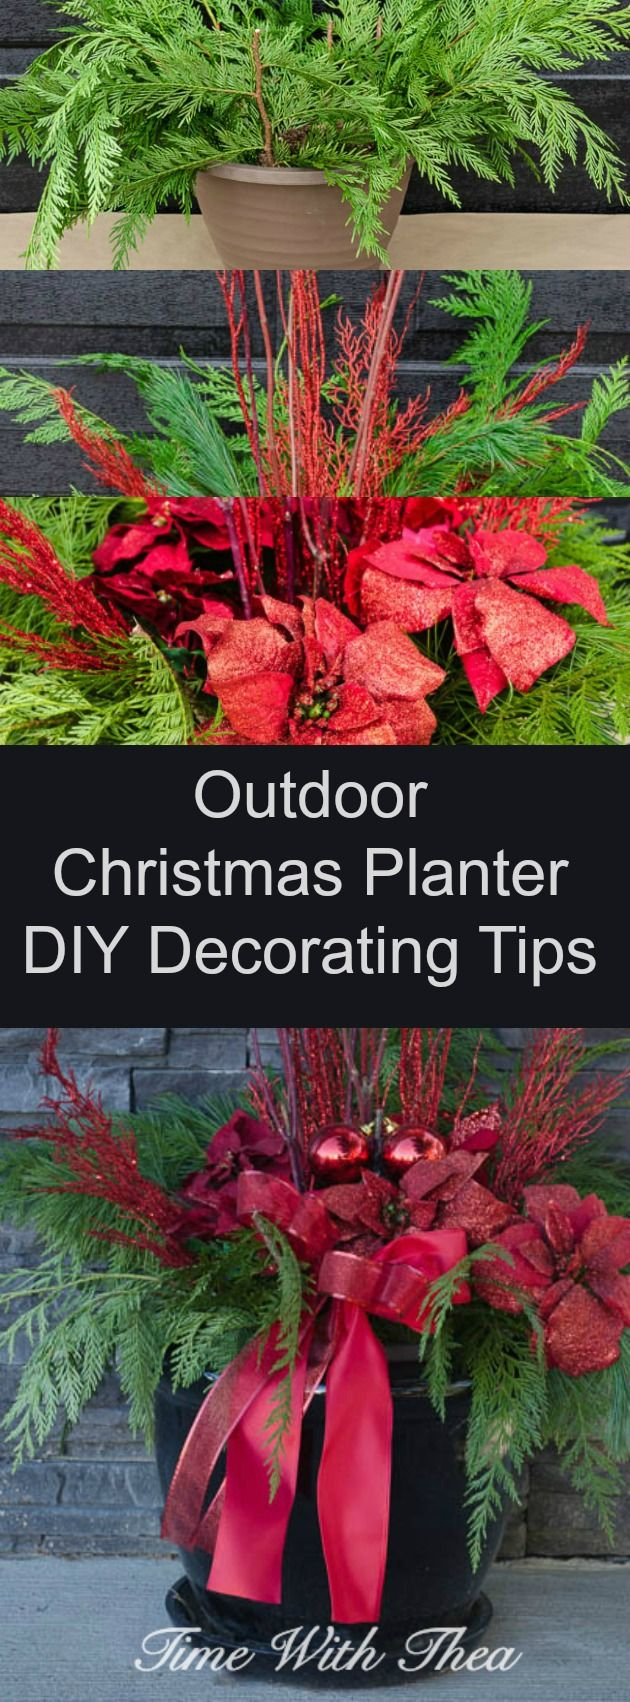 Outdoor Christmas Planter DIY Decorating Tips ~ Easy to follow tips anyone can use to design and make gorgeous outdoor planters for the Christmas season. / timewiththea.com